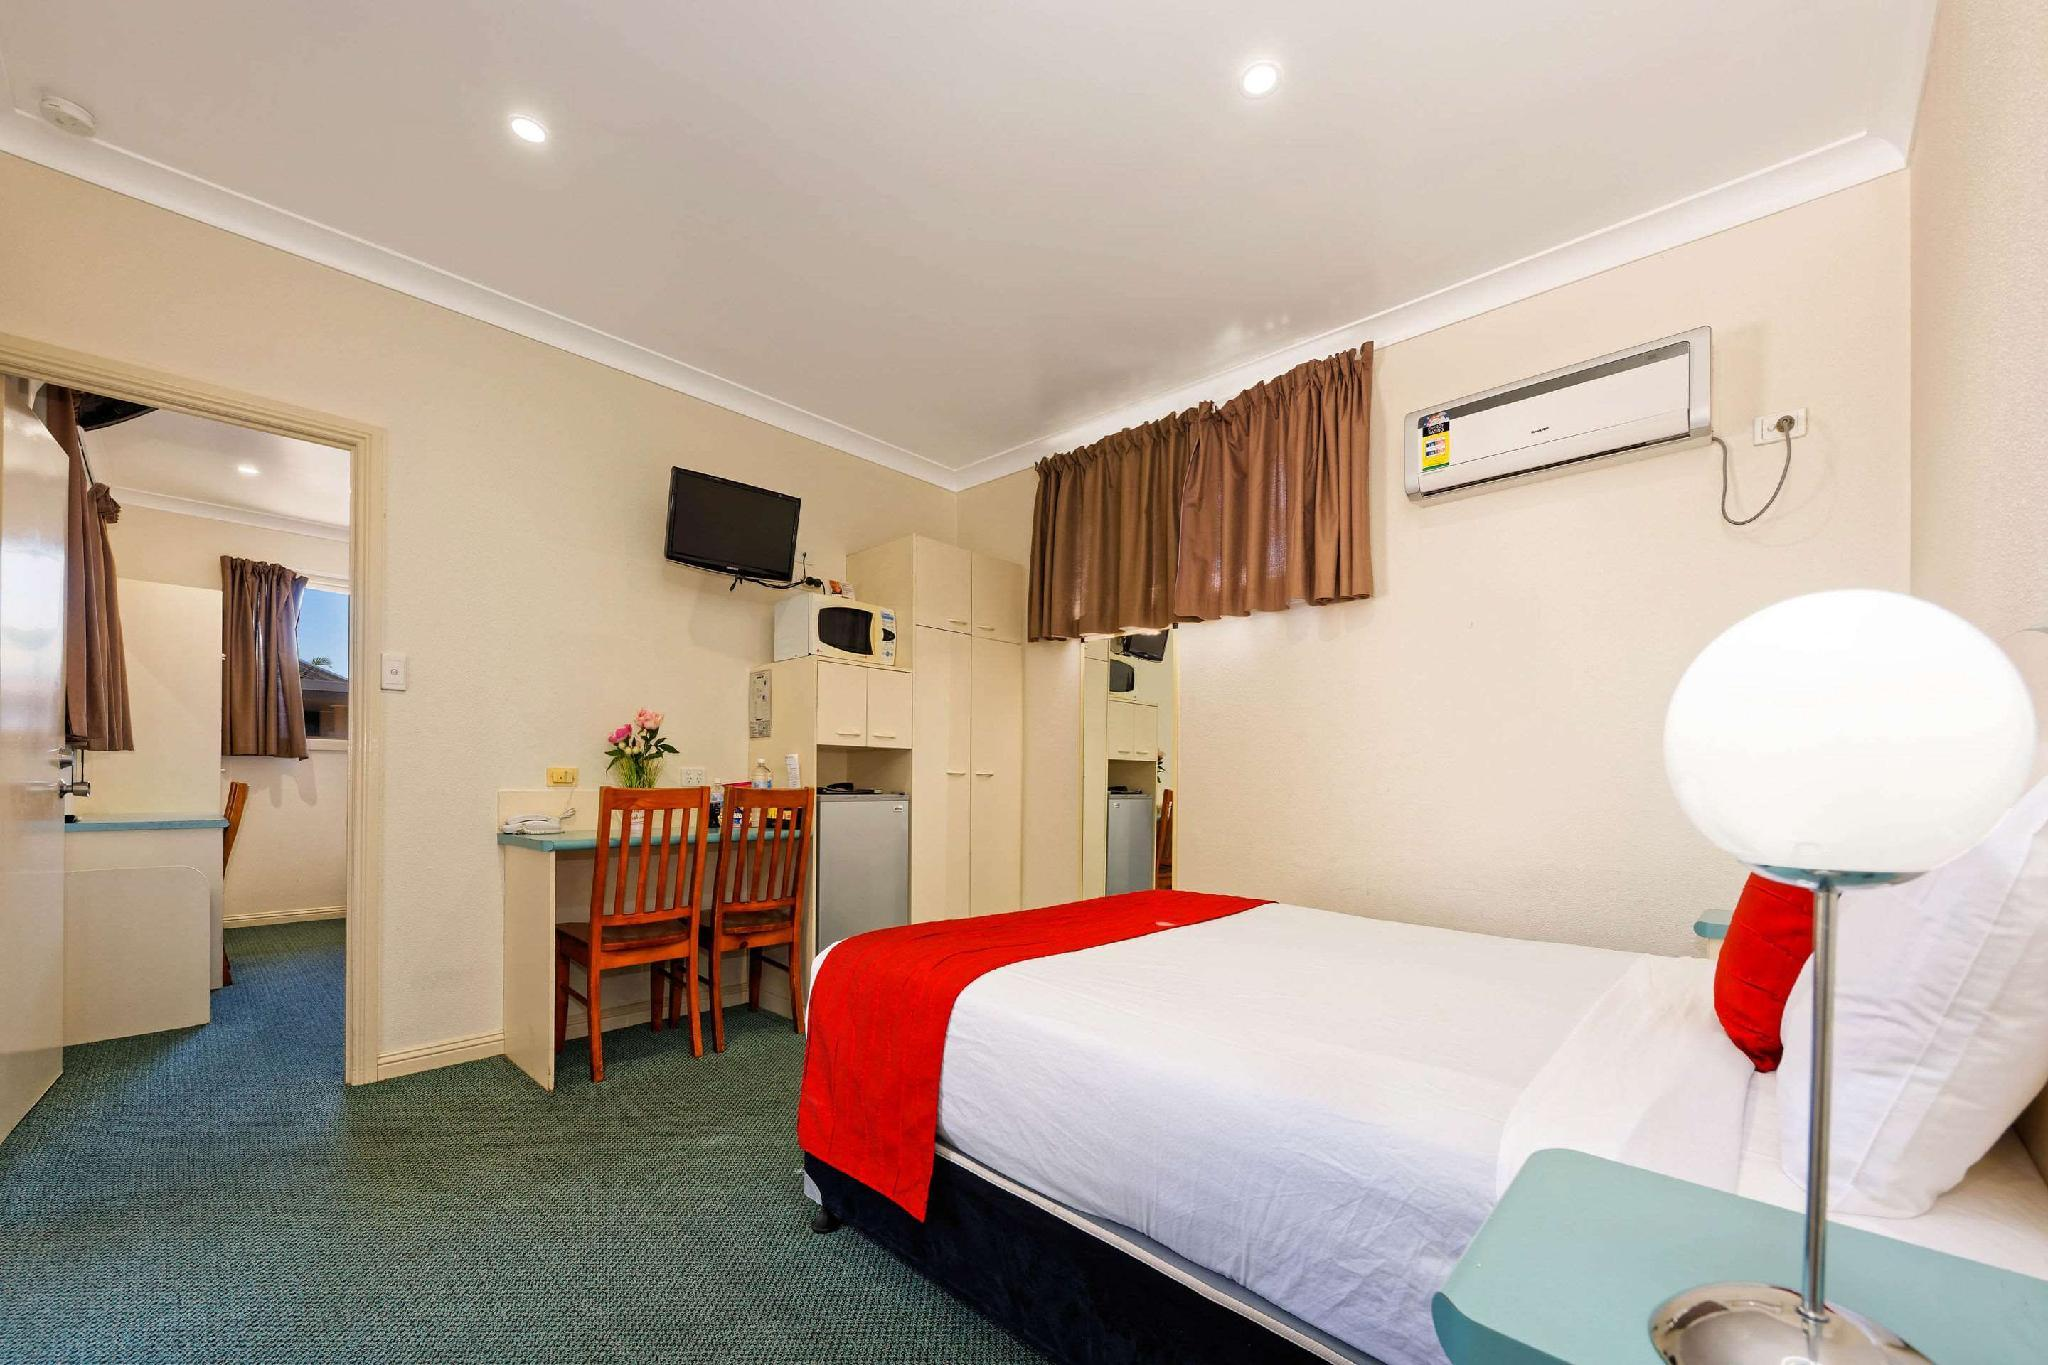 2 Queen Beds, 2 Single Beds, Suite, Smoke Free